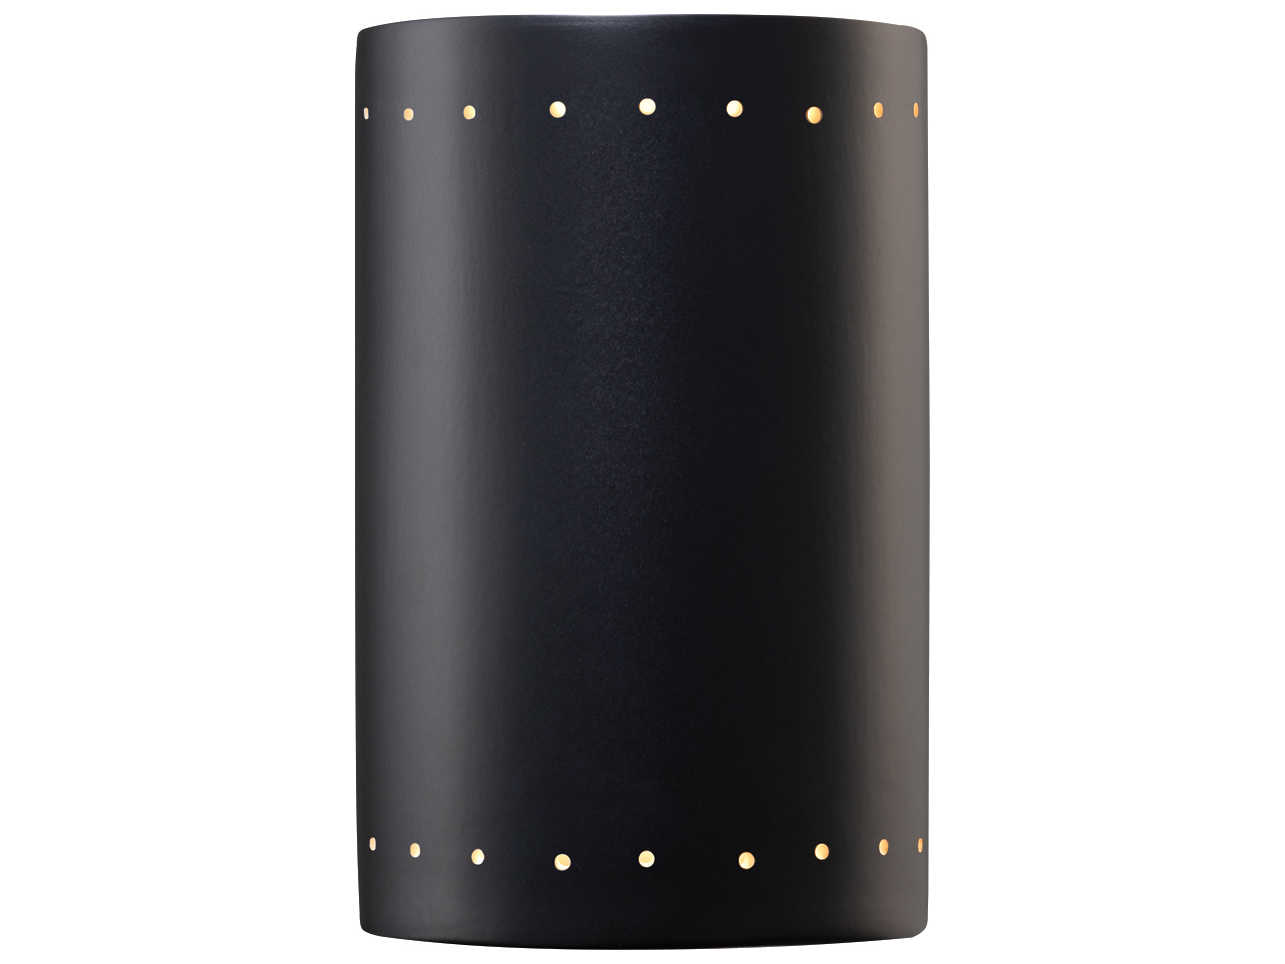 Justice Design Group Ambiance Cylinder Large Ceramic Outdoor Wall Sconce With Perfs CER-1295W